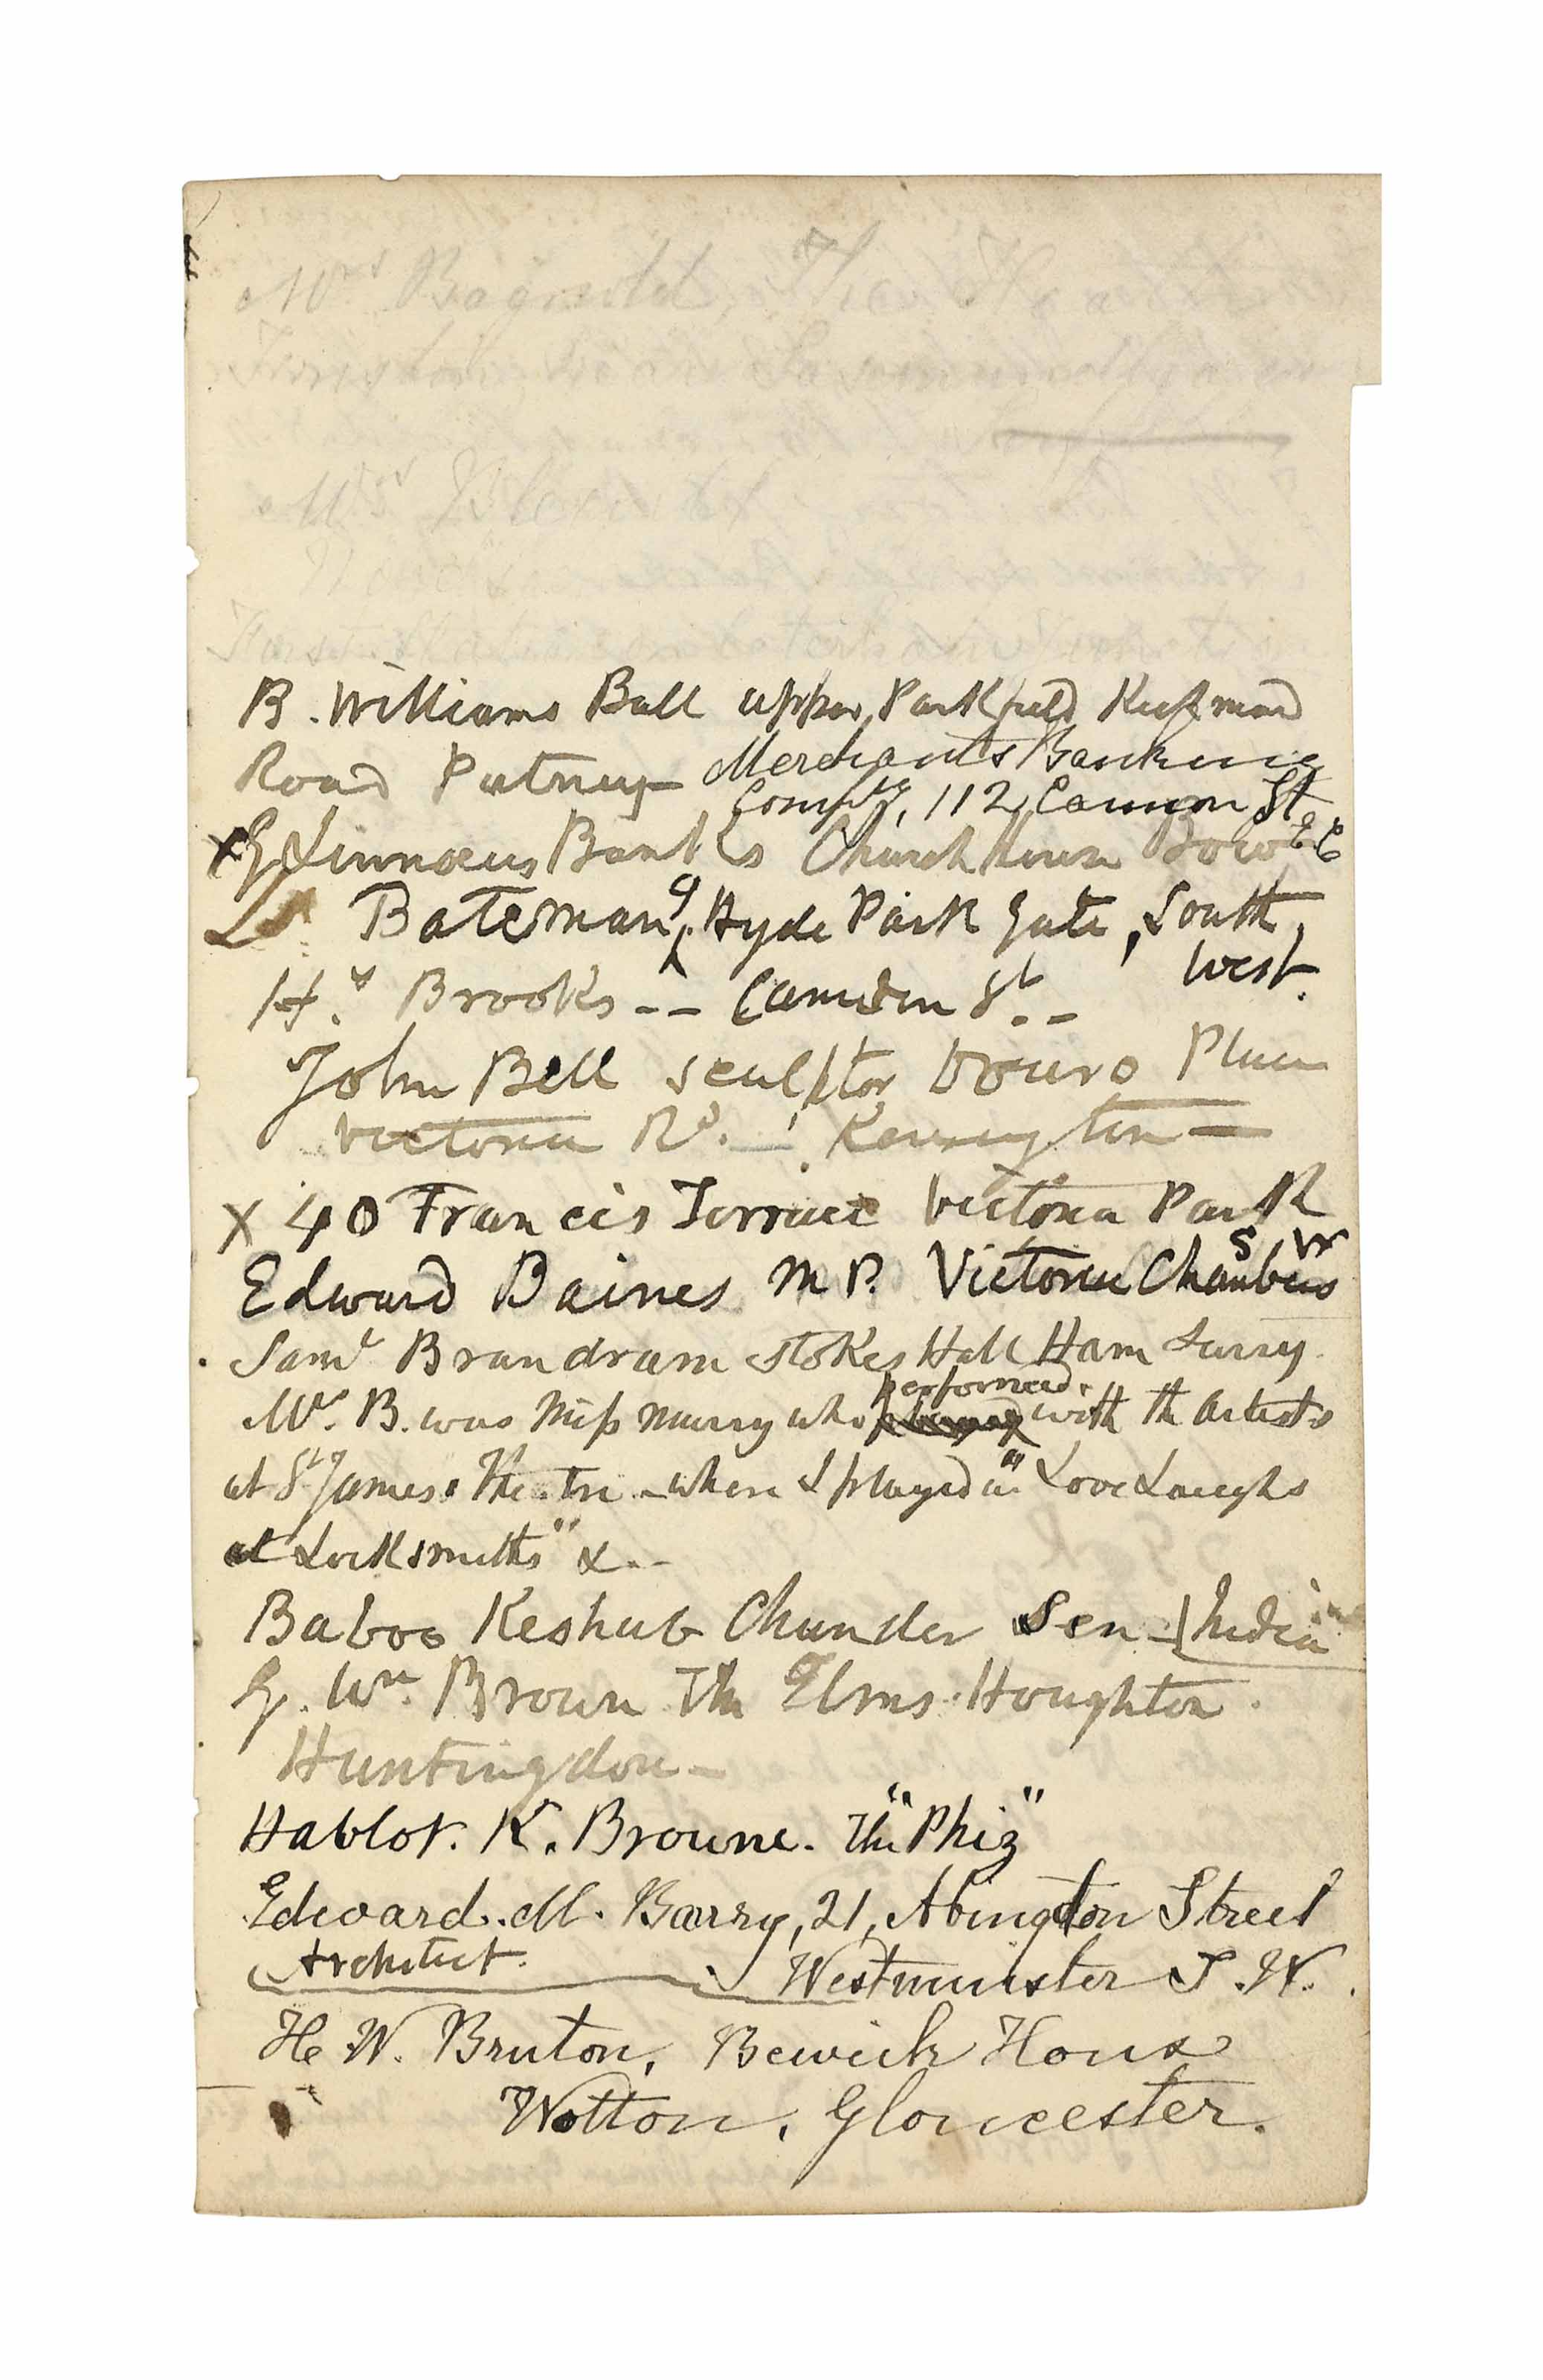 """CRUIKSHANK, George (1792-1878). Autograph manuscript address book, [begun mid-1840s], heavily used, the addresses including Charles Dickens (at 1 Chester Place, an address he occupied briefly in 1847), W.M. Thackeray (3 addresses), John Ruskin, Hablot K. Browne (annotated 'The """"Phiz""""'), Robert Smirke senior, the publishers Bradbury and Evans, Lord John Russell, as well as collectors, tradesmen, lodgings, and many others, in at least one case noting a family of abstainers, sketch drawing of a palette on the front free endpaper annotated 'Wilkie's Palette  on the authority of Alexr Fraser who painted with Wilkie', 77 leaves, 8vo, original roan (worn, sprung), stationer's label of A.H. Baily & Co., red cloth slipcase. Provenance: William H. Woodin collection, New York -- his sale, Parke-Bernet, 6-8 January 1942, part 2, lot 238 -- Sotheby's New York, 14 December 1988, lot 11."""